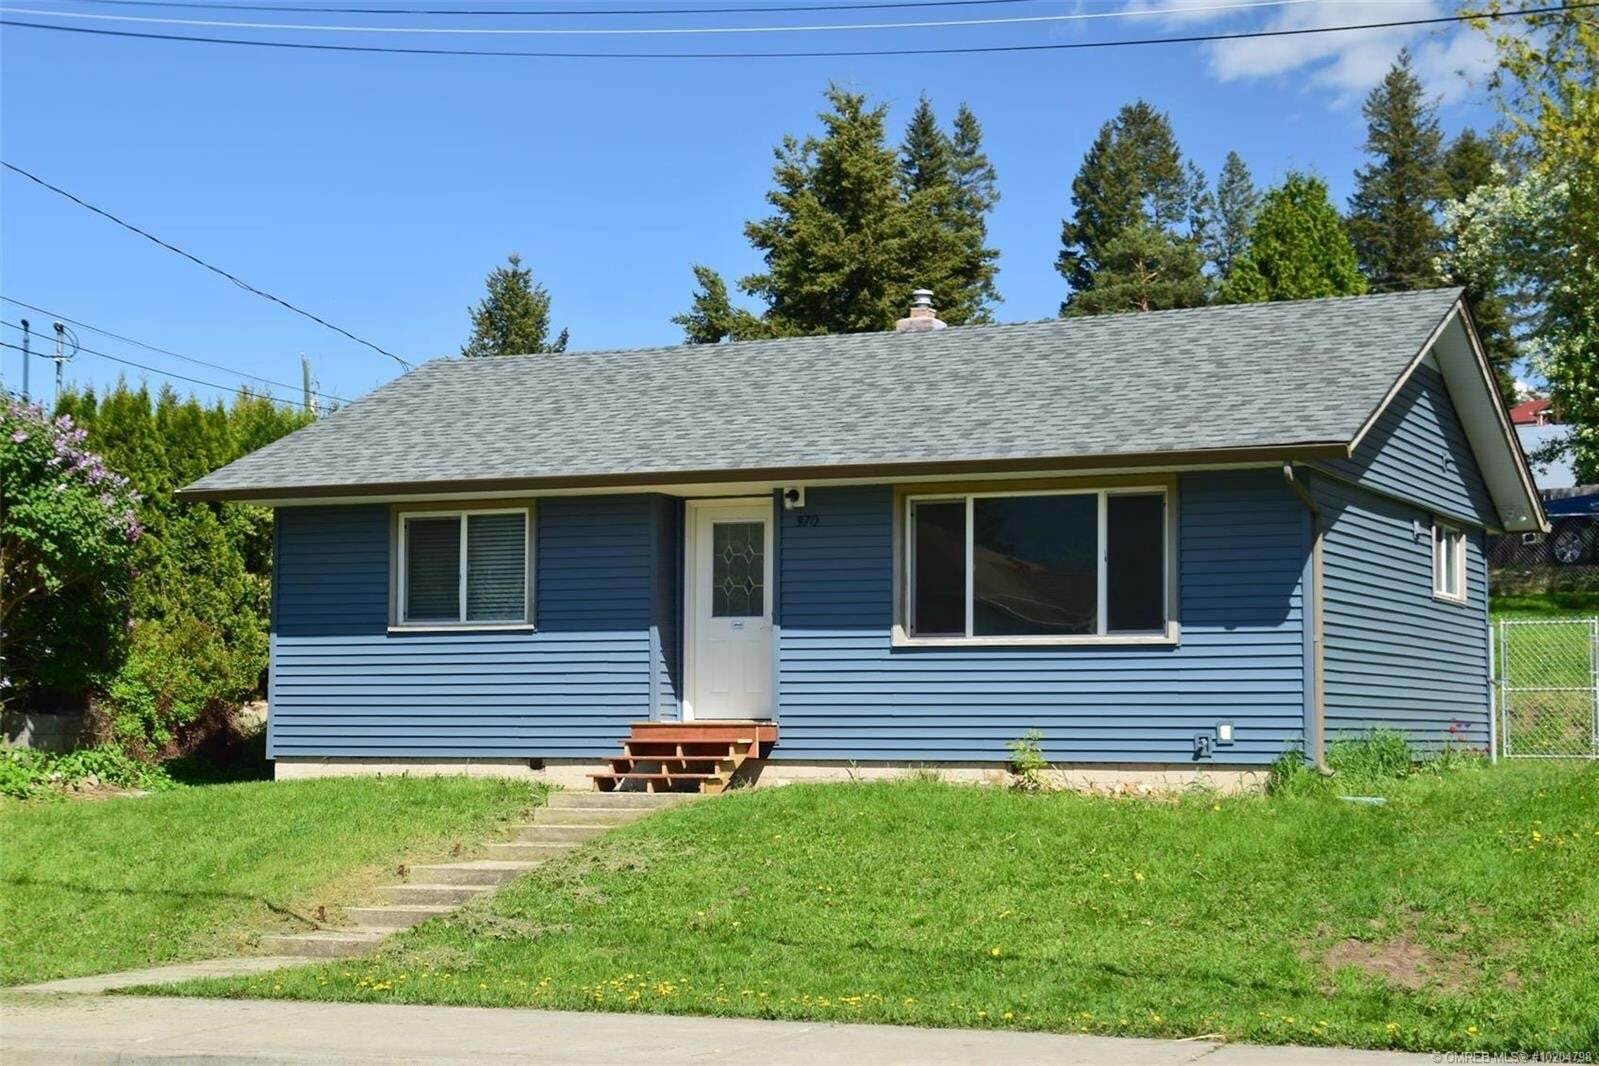 House for sale at 370 6 St Southeast Salmon Arm British Columbia - MLS: 10204798